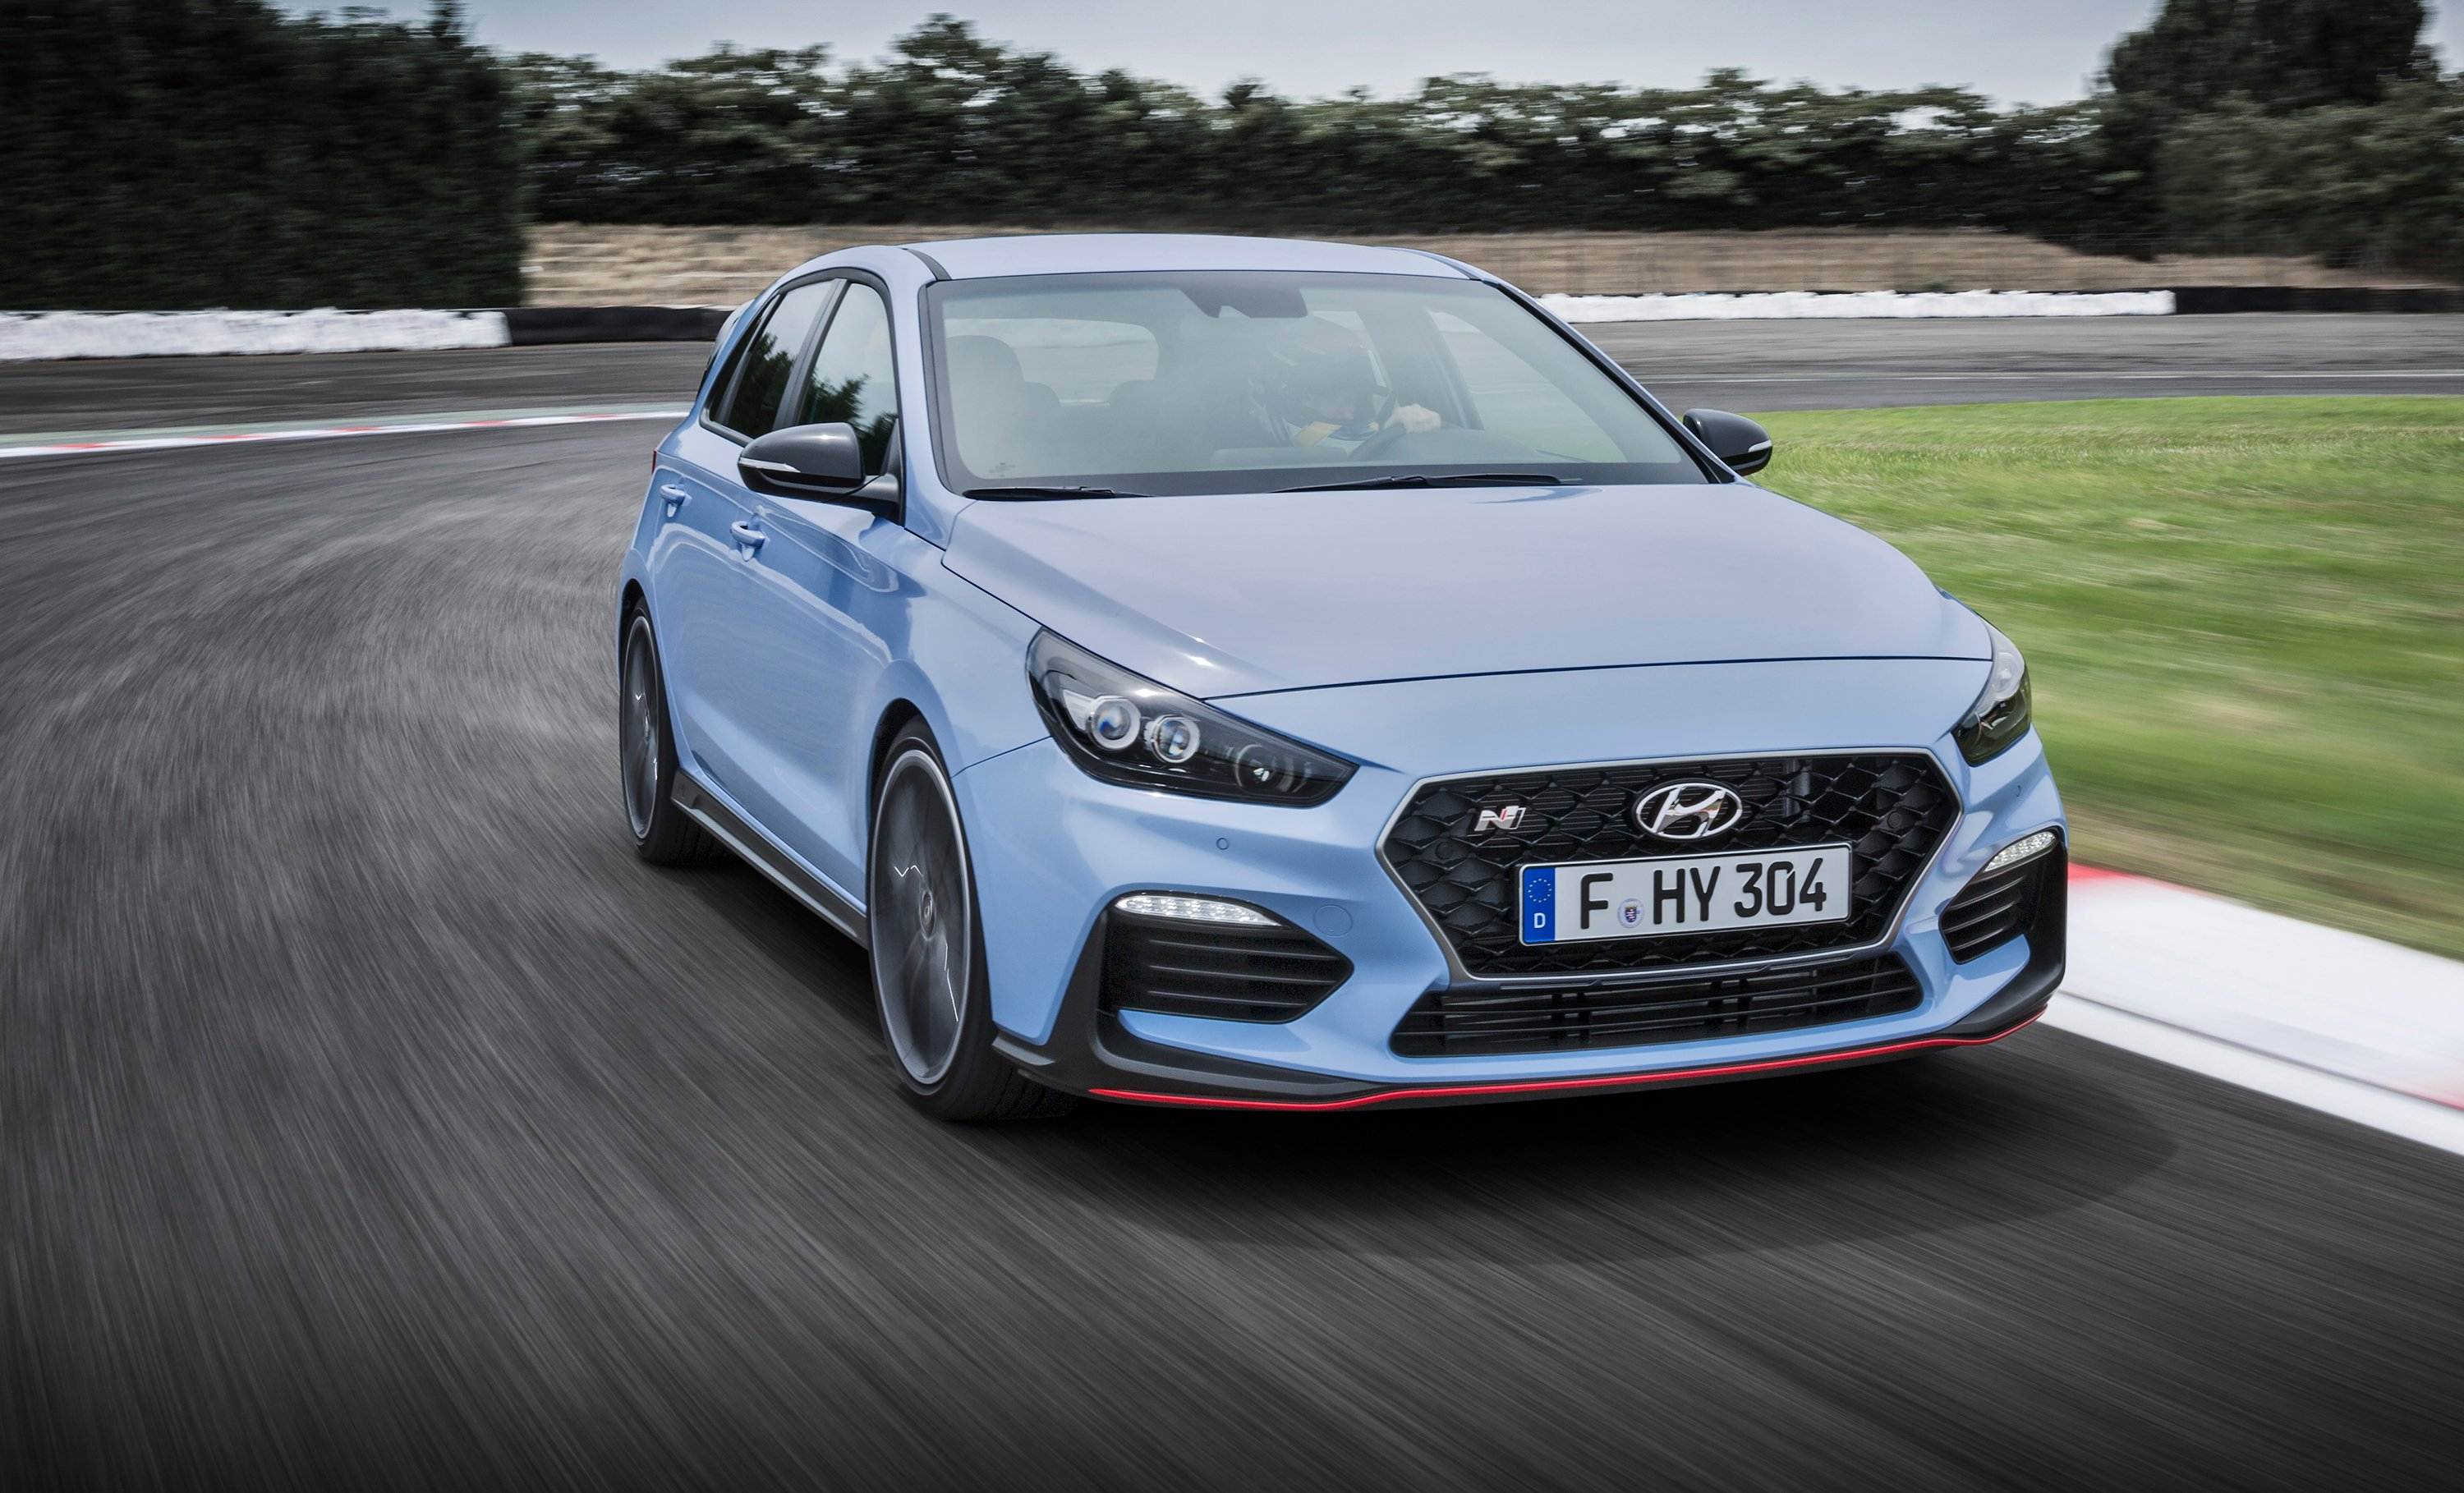 Hyundai i30 N revealed - UPDATE: Oz launch delayed - Photos